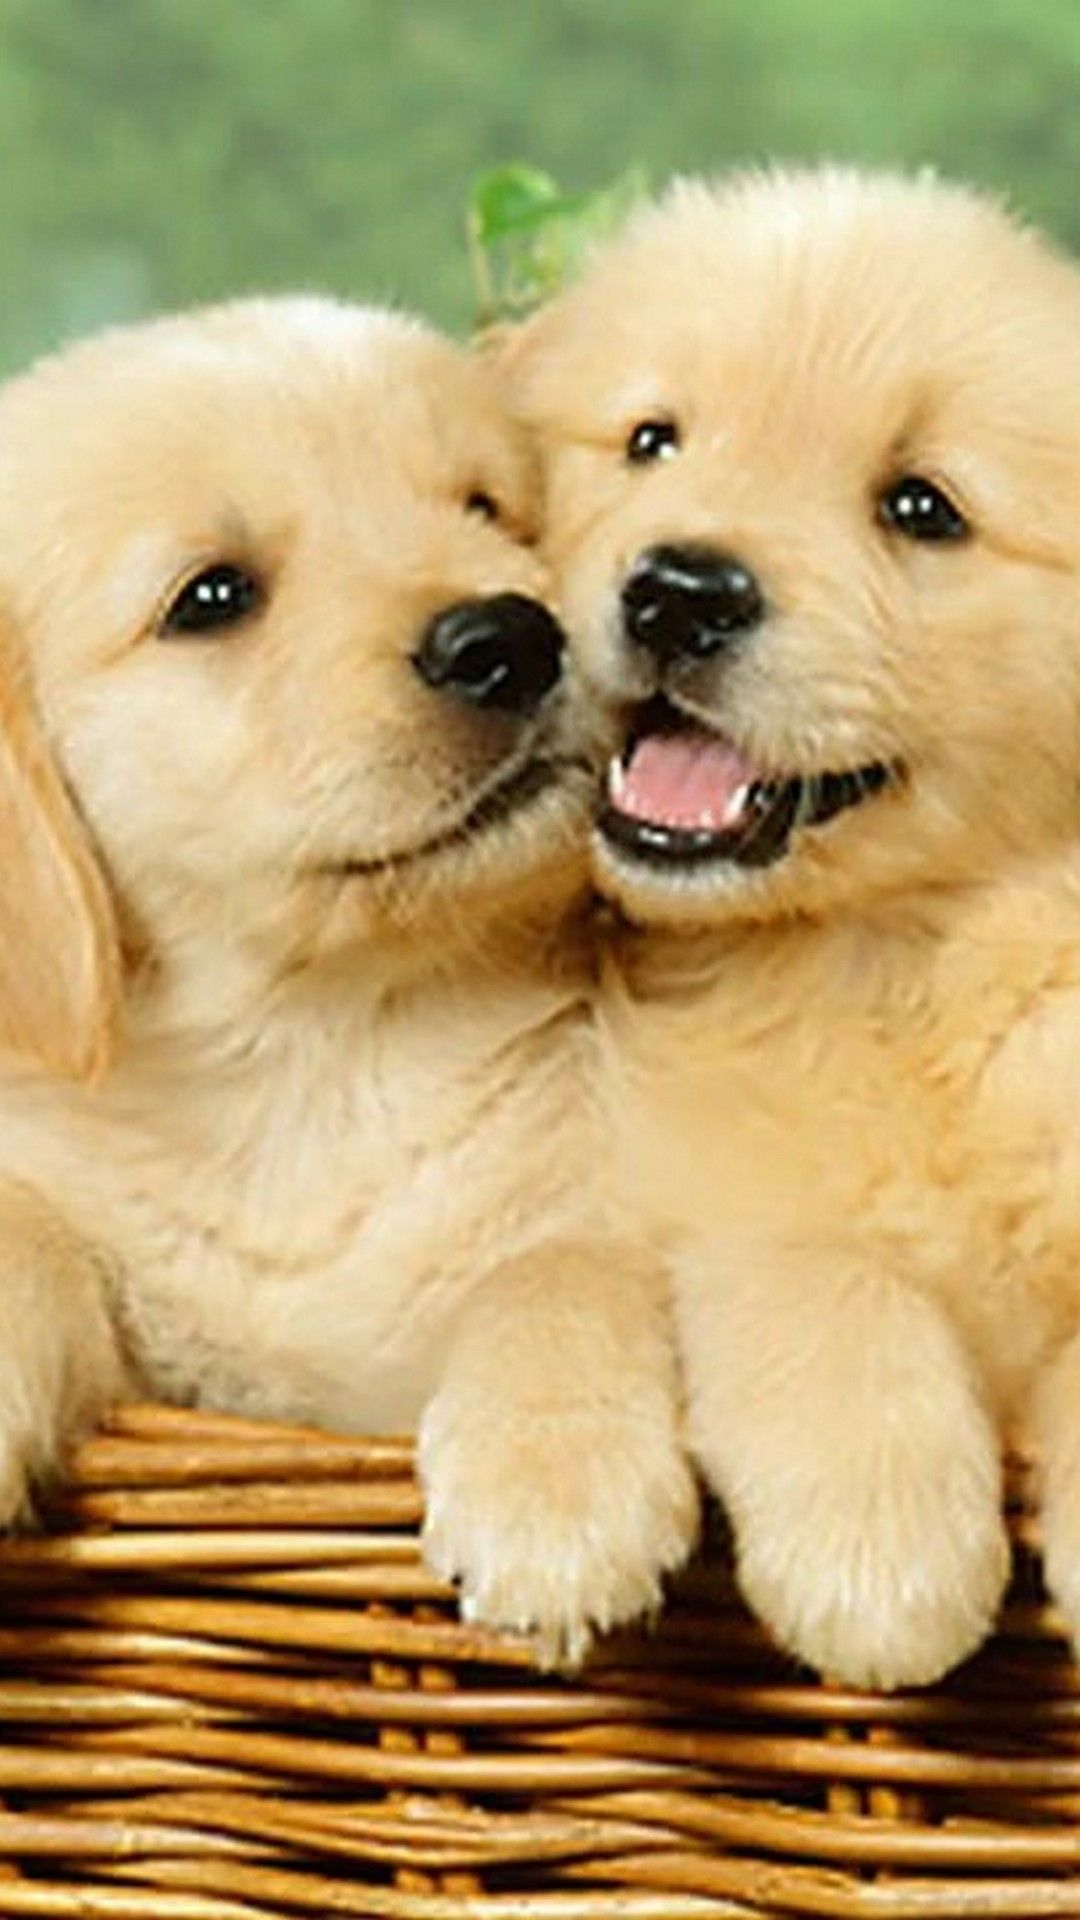 Wallpaper Cute Puppies iPhone Things I Like Dog